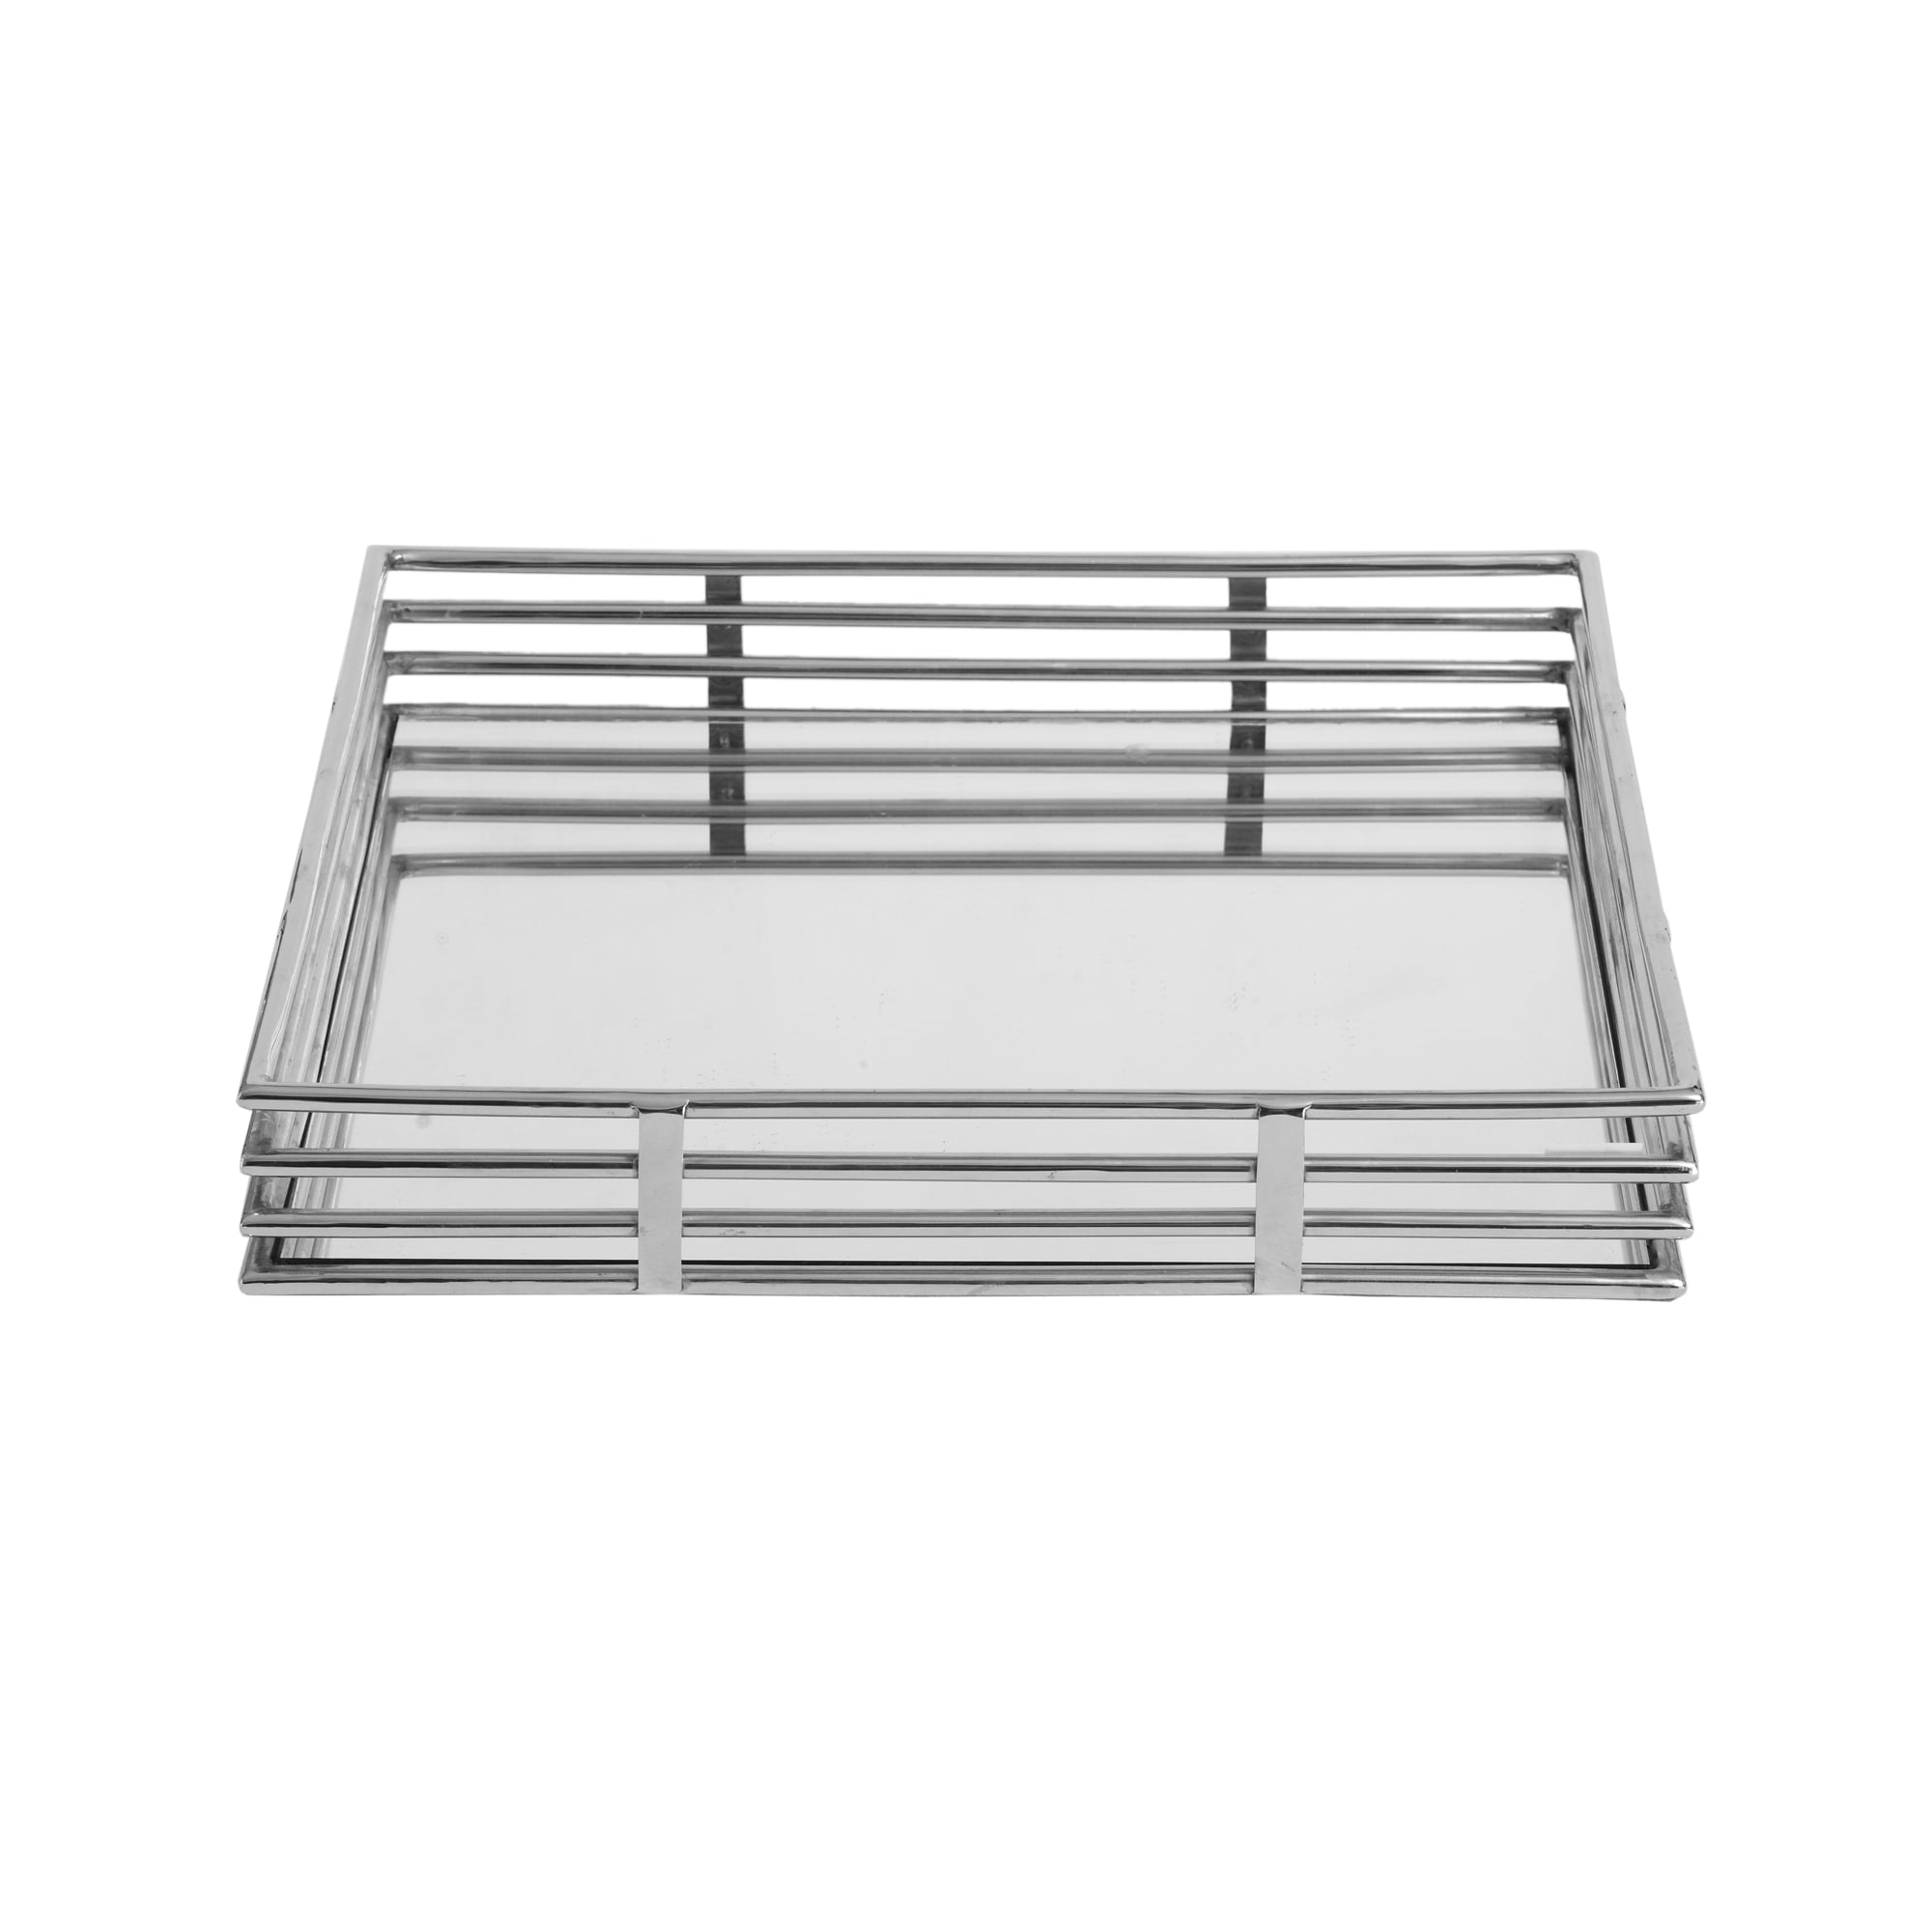 Exton Chrome and Mirror Tray